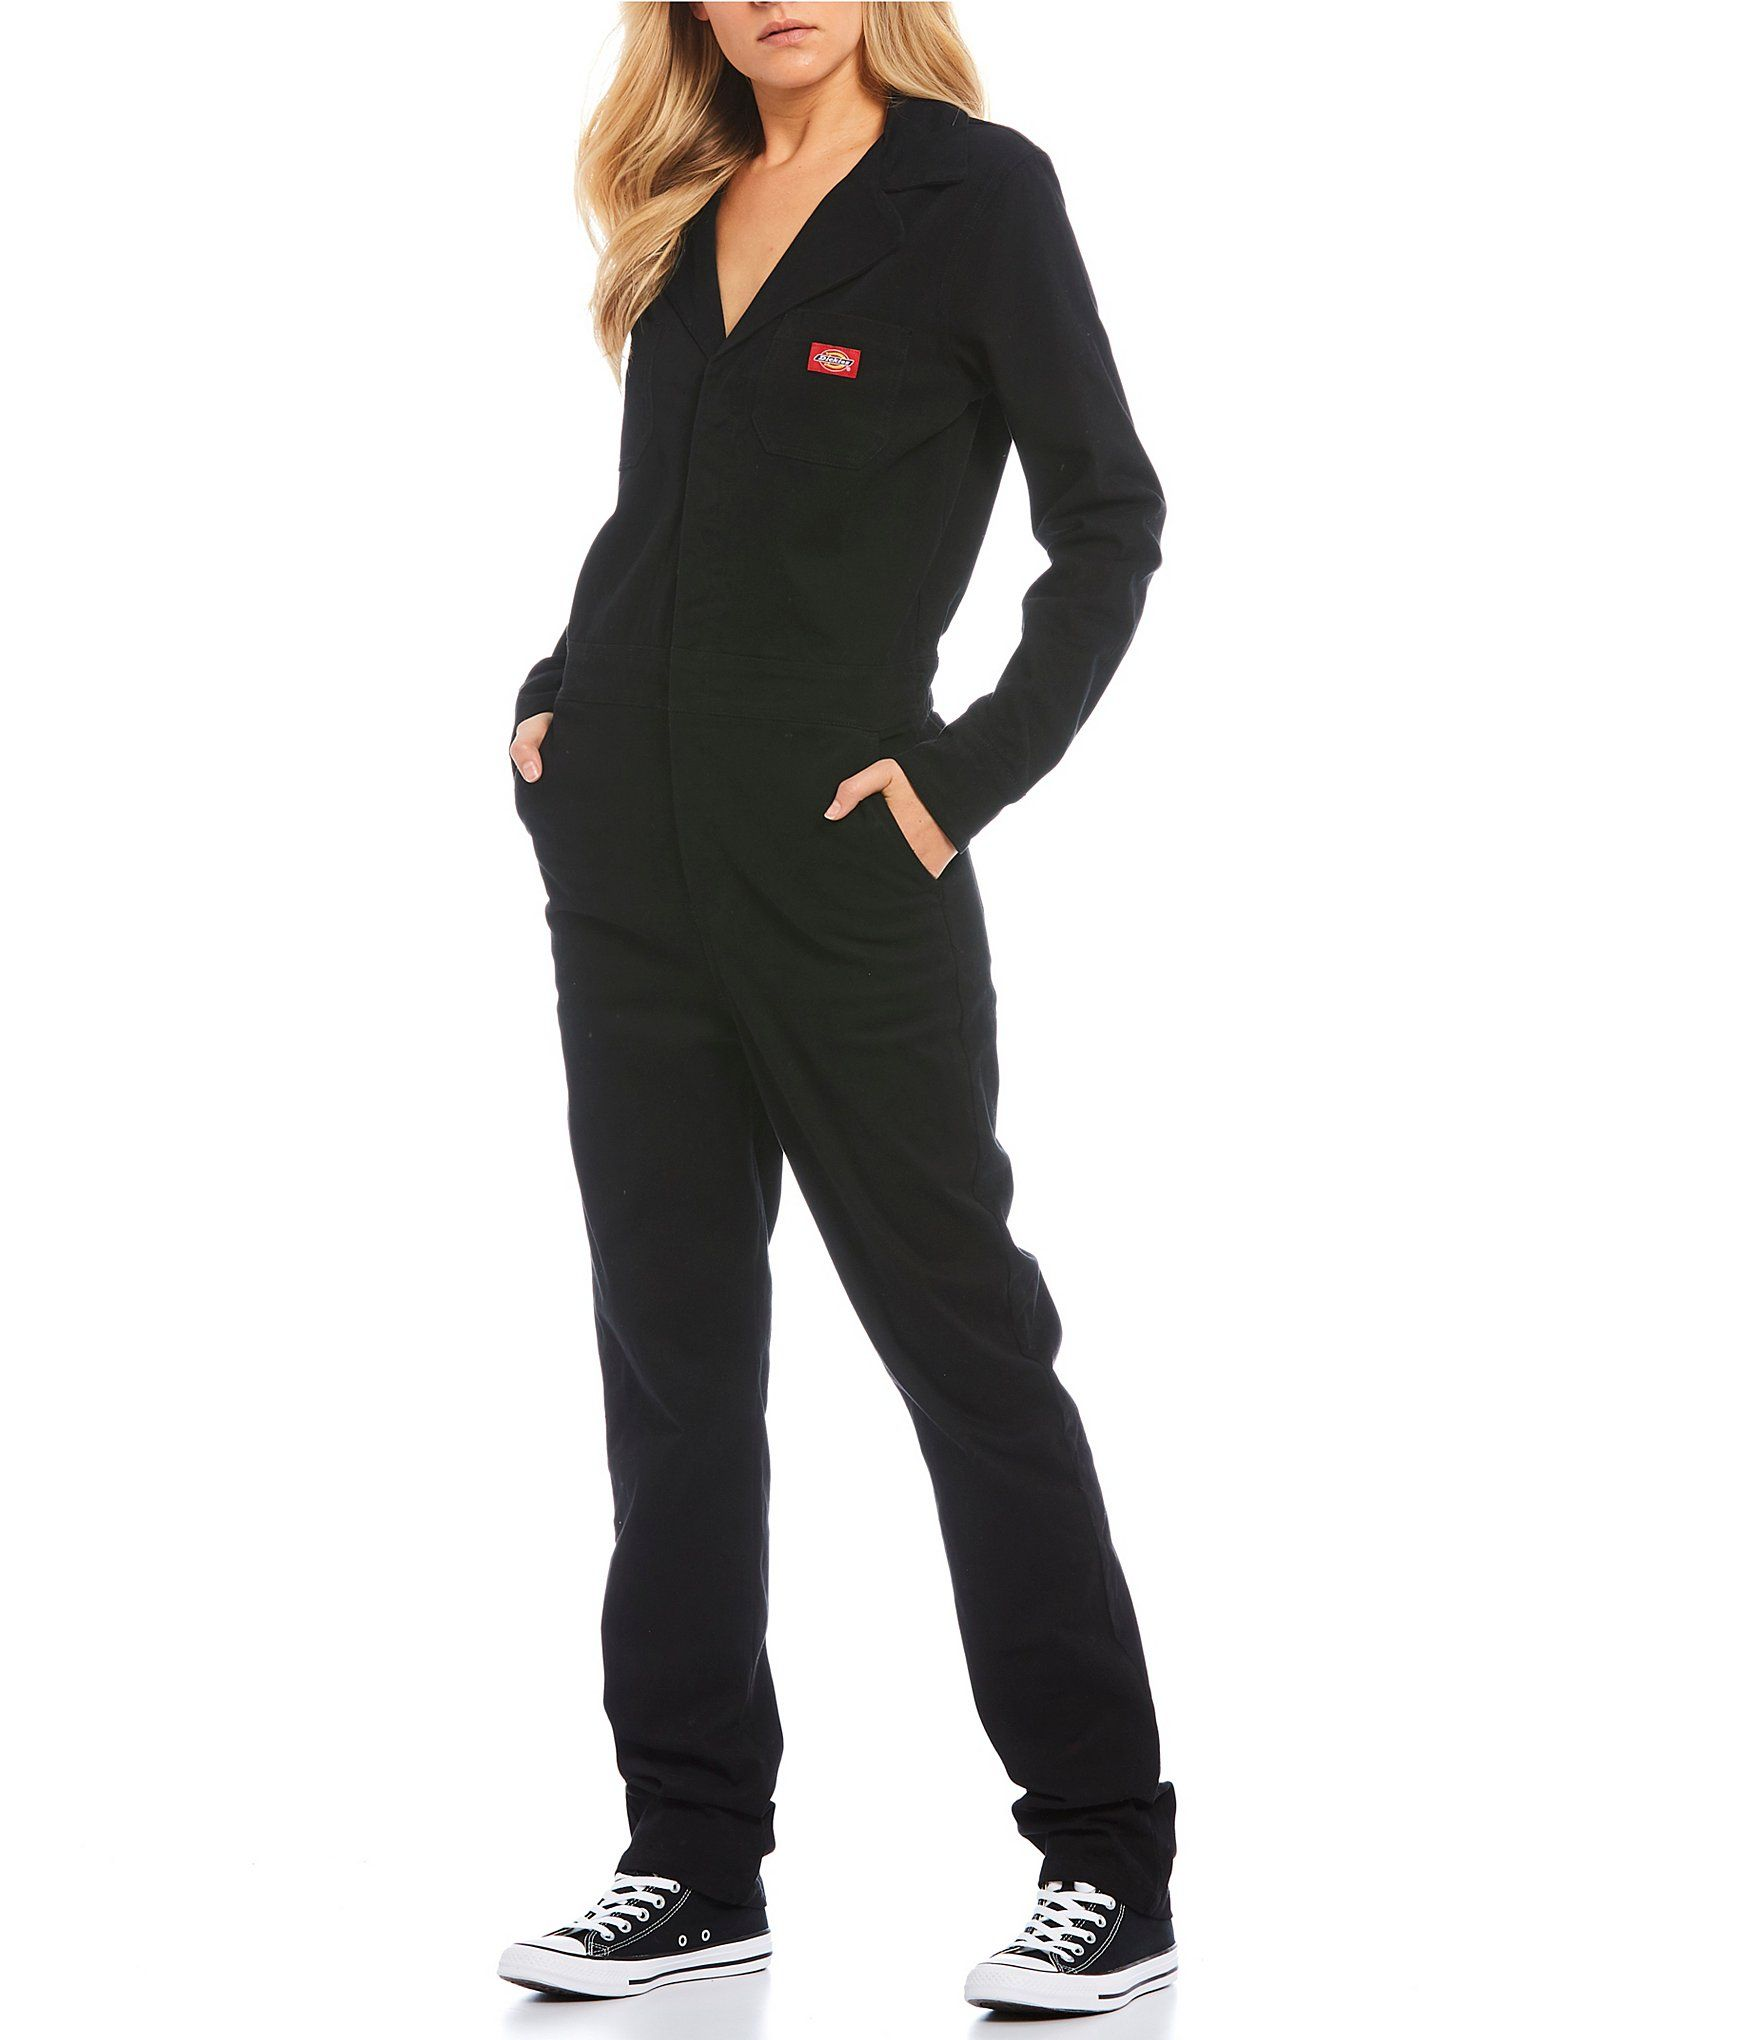 dickies relaxed fit button front coveralls black xs in on dickies coveralls id=18534